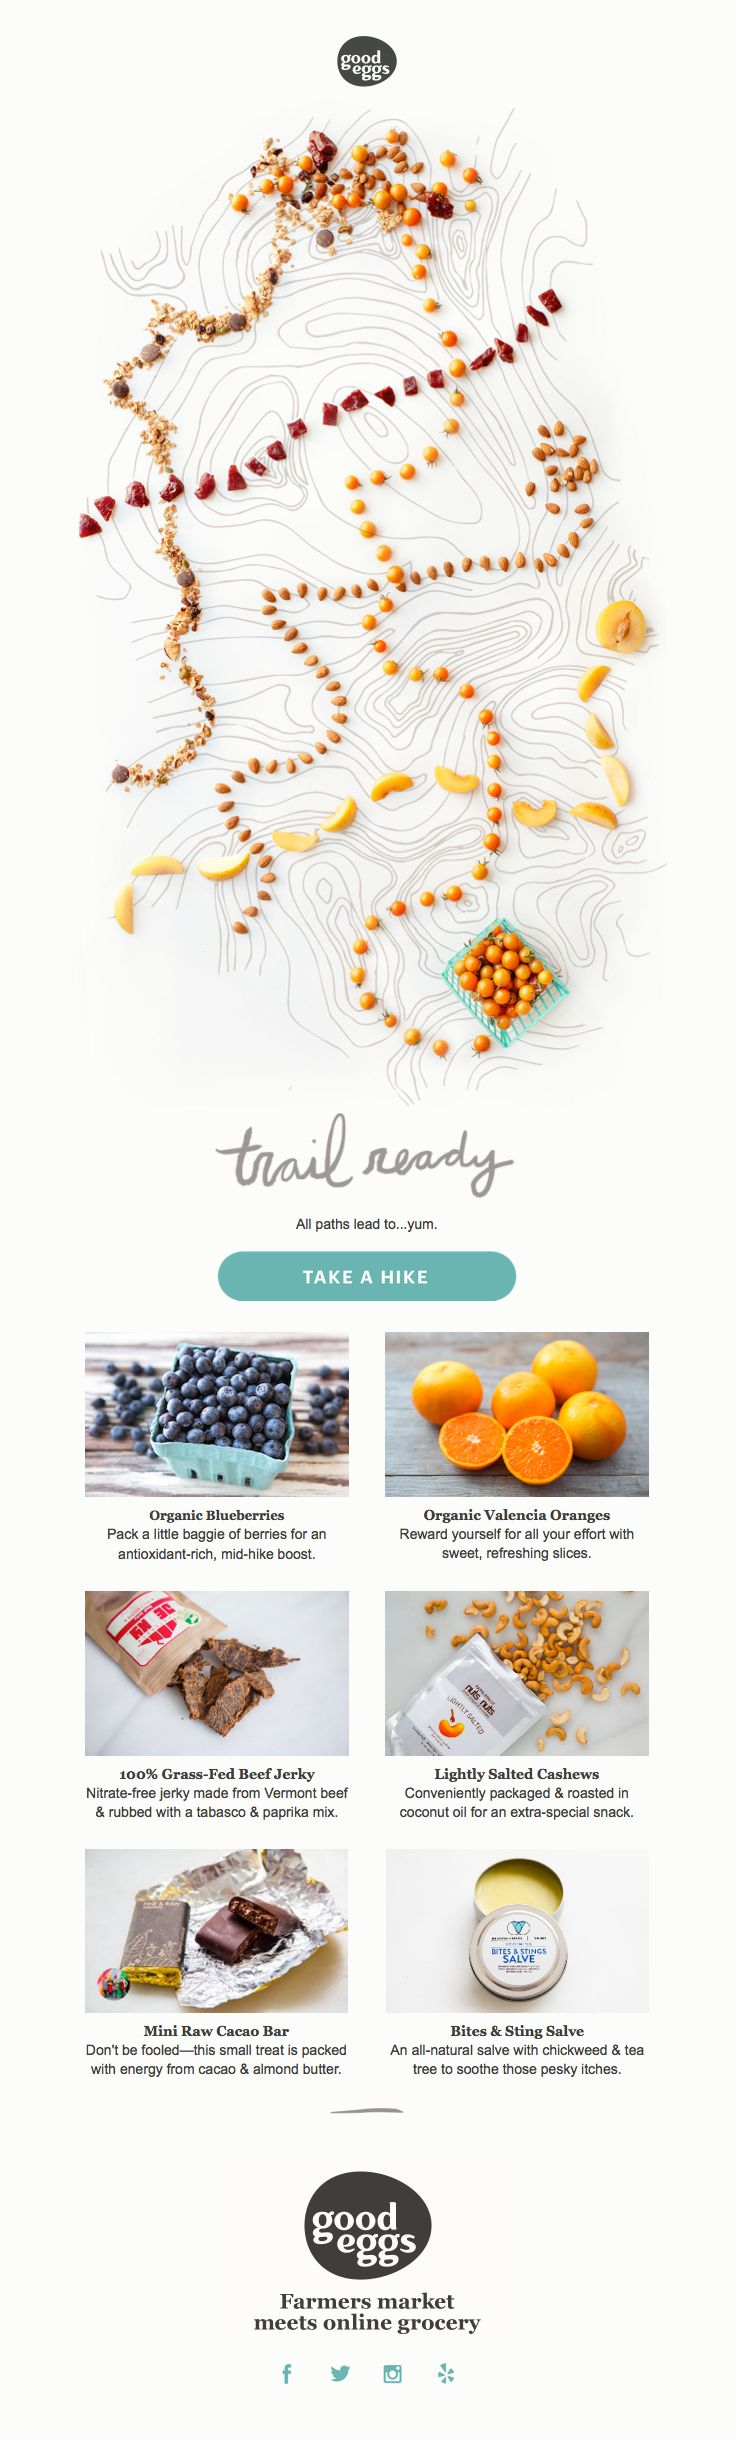 @good_eggs  sent this email with the subject line: Trail Ready: Organic Blueberries, Orange Slices & Spicy Beef Jerky - A beautiful and interesting image of trails draws me into this image for a grocery line from Good Eggs. Really thoughtful. Read about this email and find more newsletter emails at ReallyGoodEmails.com #ecommerce #newsletter #productupdate